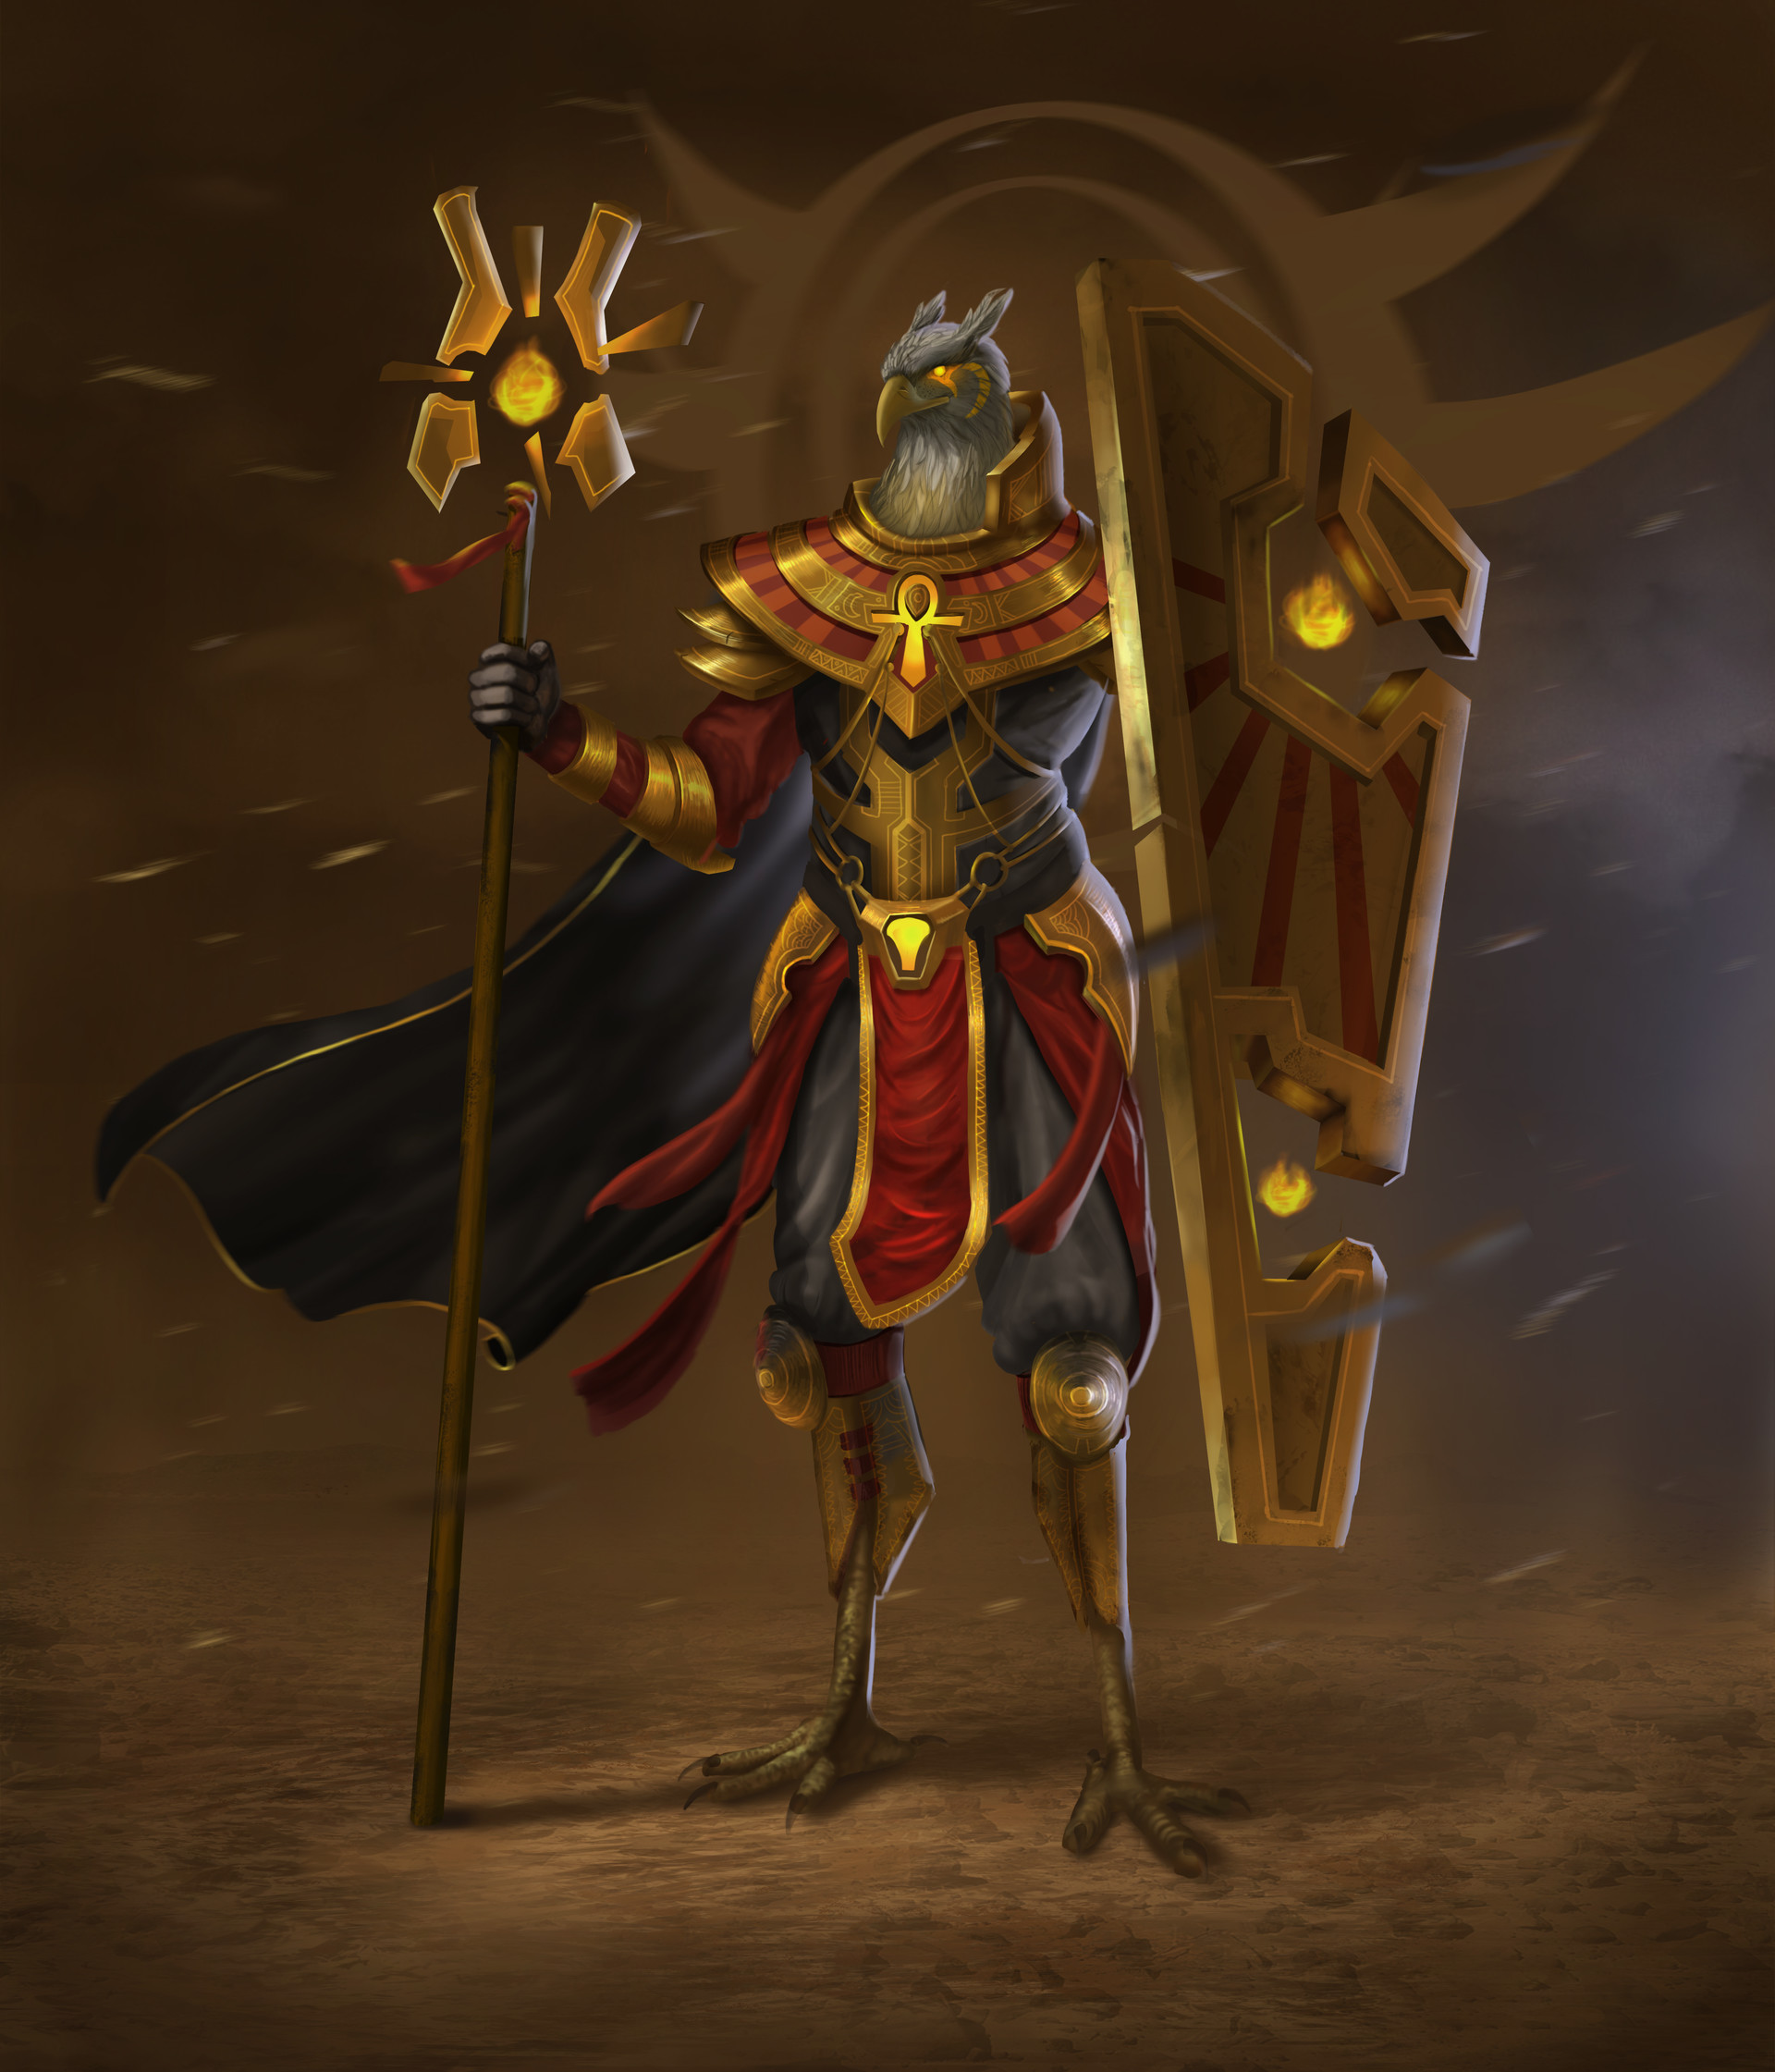 ArtStation - Egyptian God Character Design, Dennis van Kessel